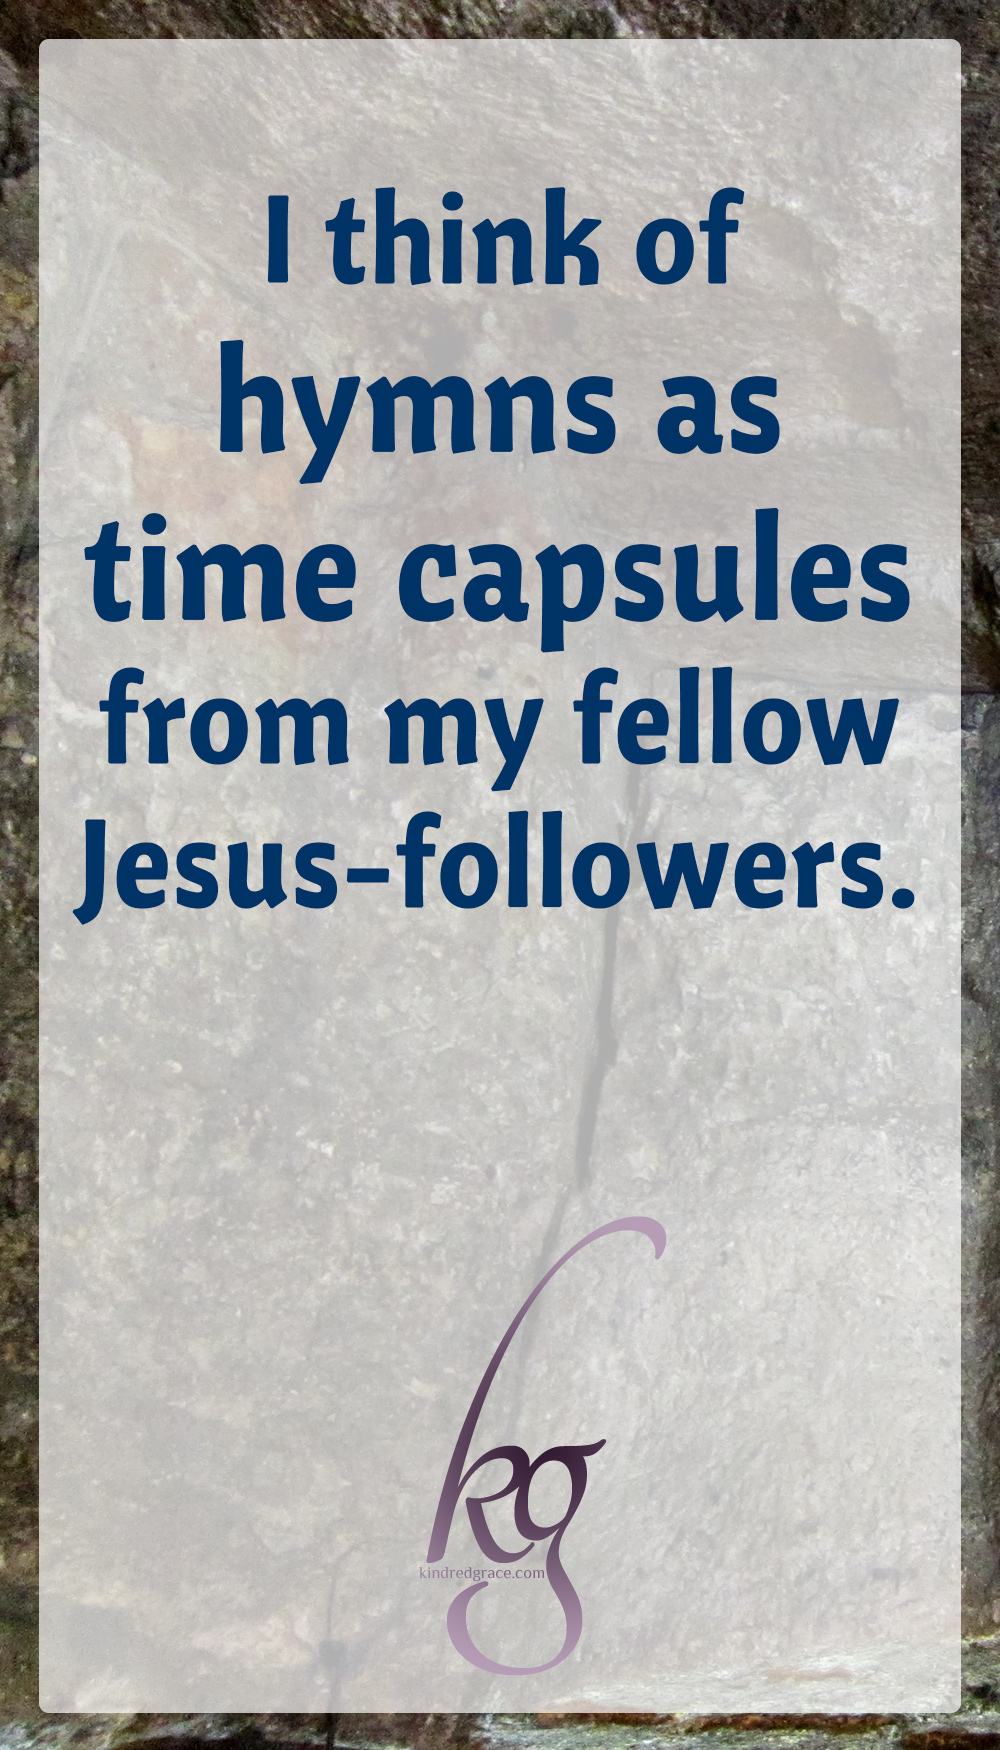 I discovered that many hymns were born out of great personal suffering! They were a response to chronic sickness, depression, blindness, the death of loved ones, heckling, persecution, and wars. They arose from other things as well, of course, like the Bible itself, God's comfort, the beauty of nature, or a desire to reach out to children. via @KindredGrace